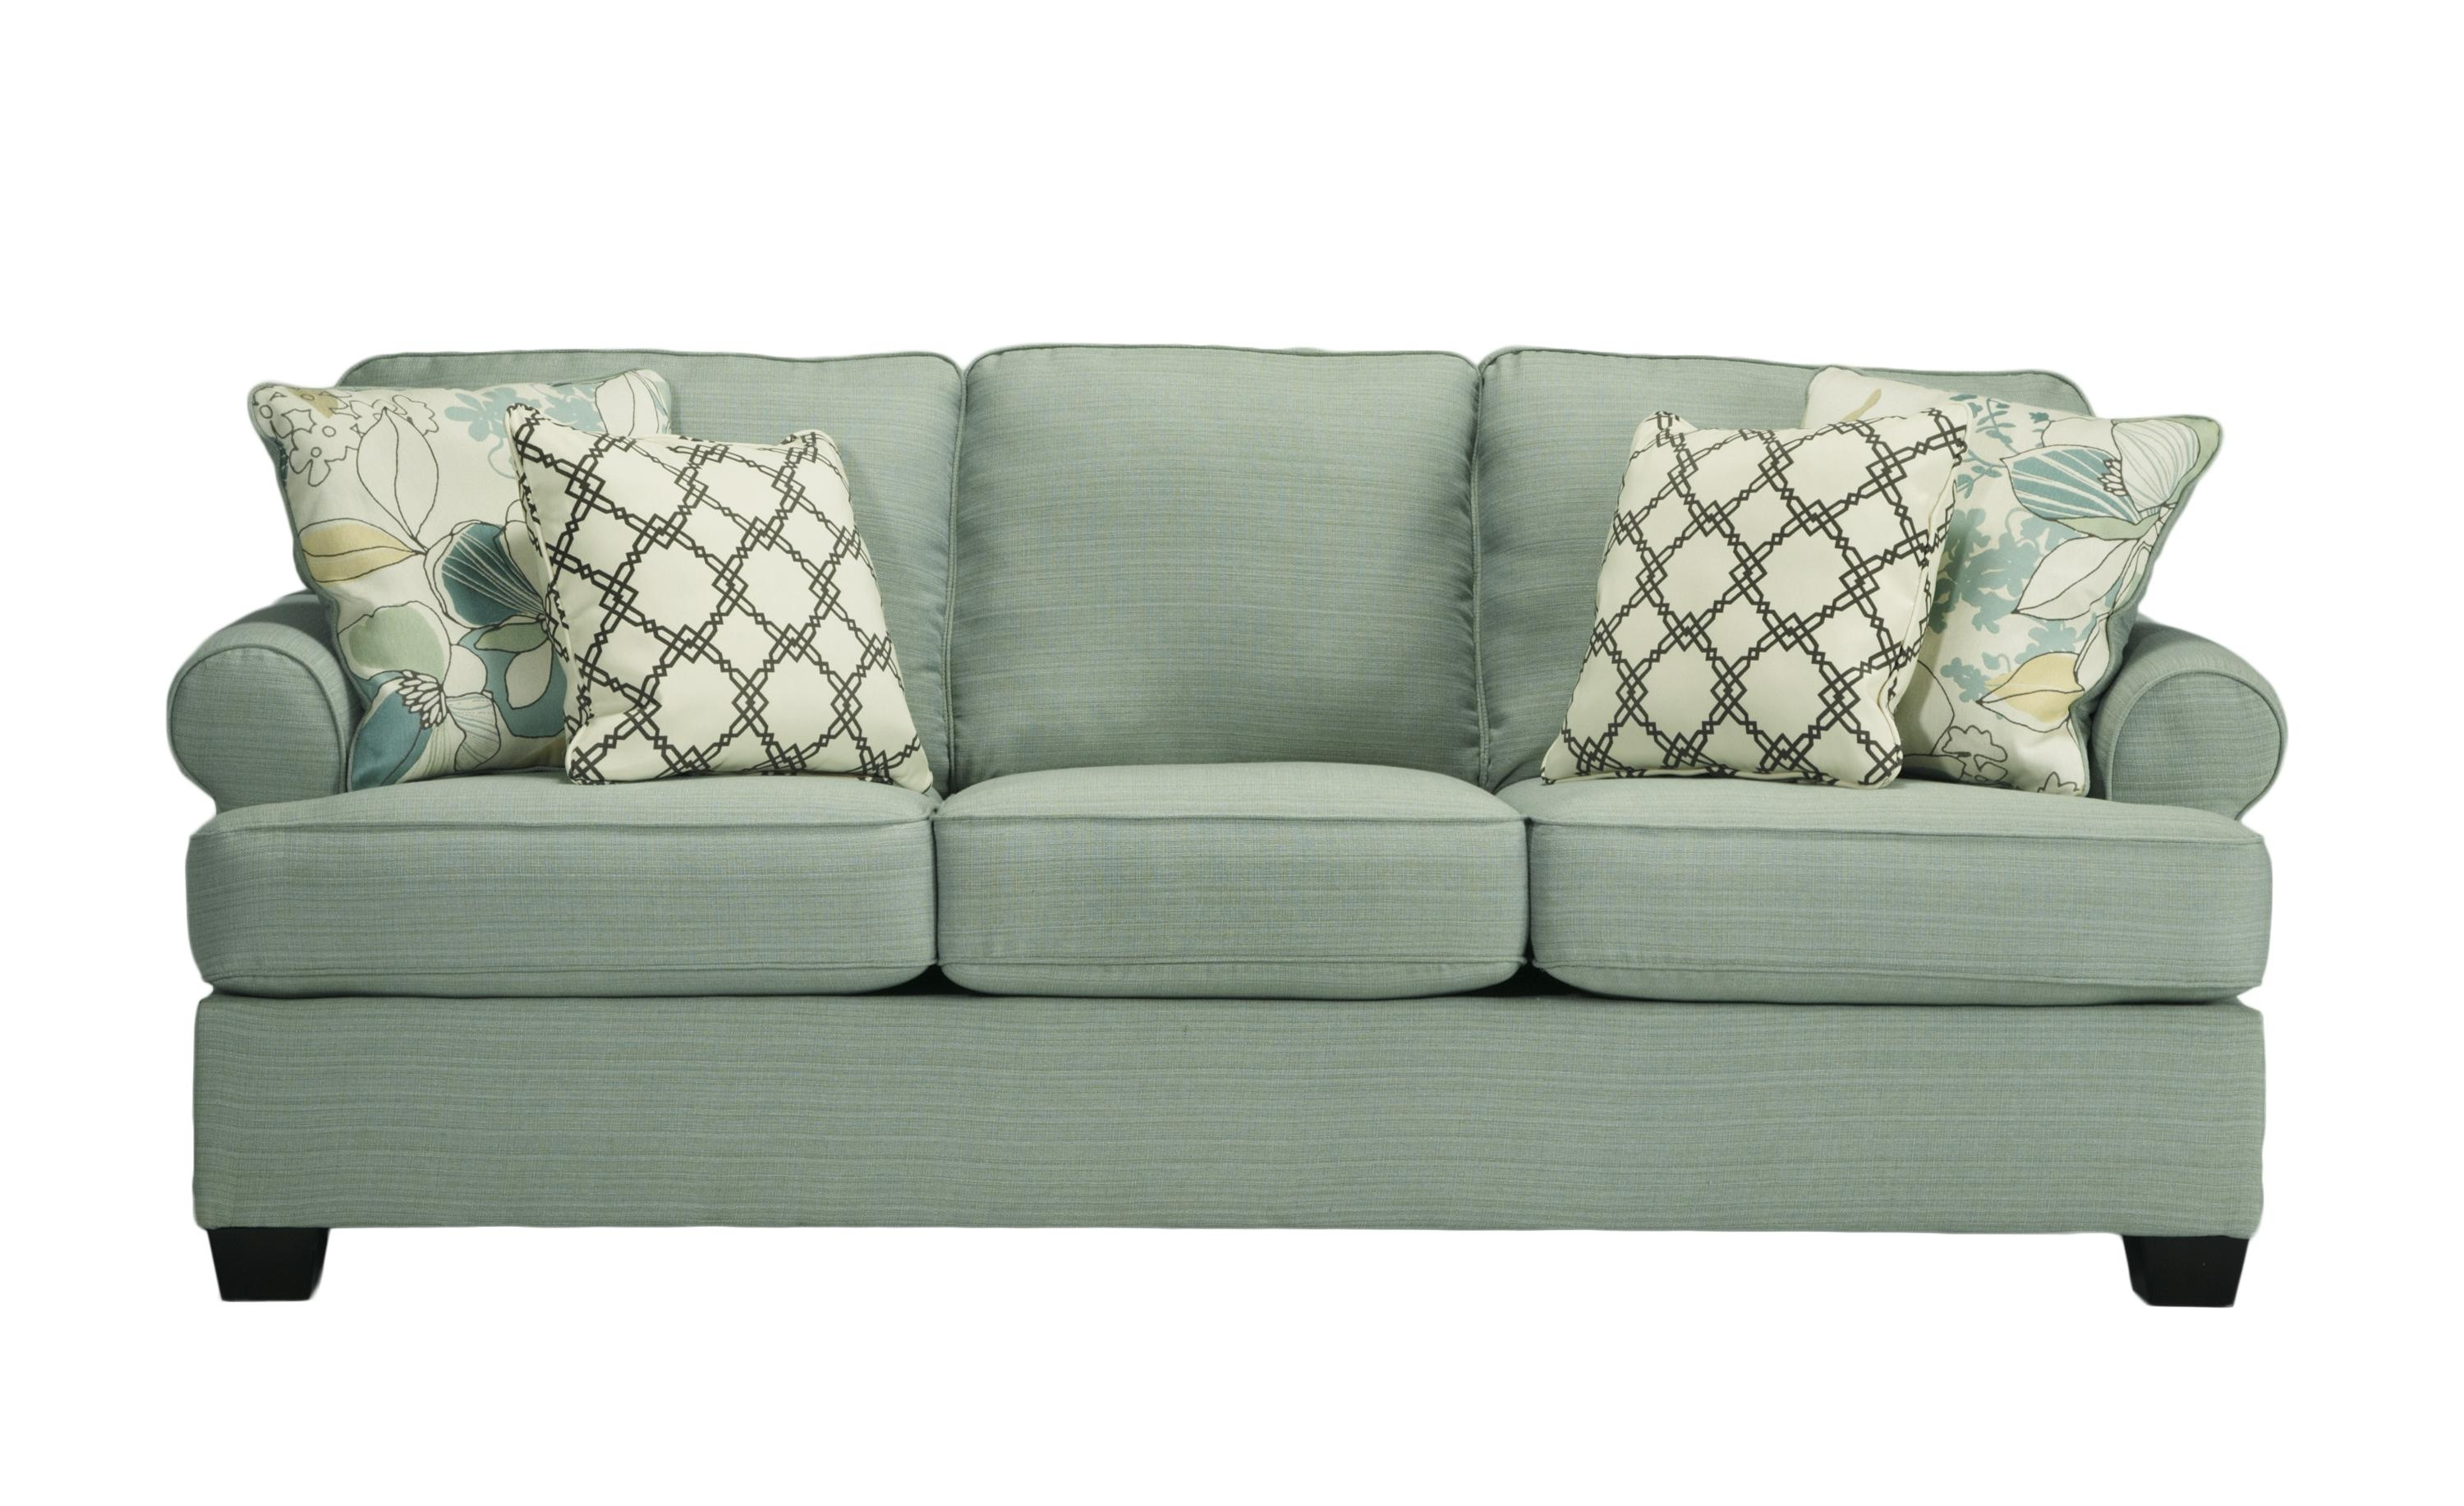 Daystar Contemporary Seafoam Fabric Sofa | Living Rooms | The For Seafoam Green Couches (Image 5 of 20)